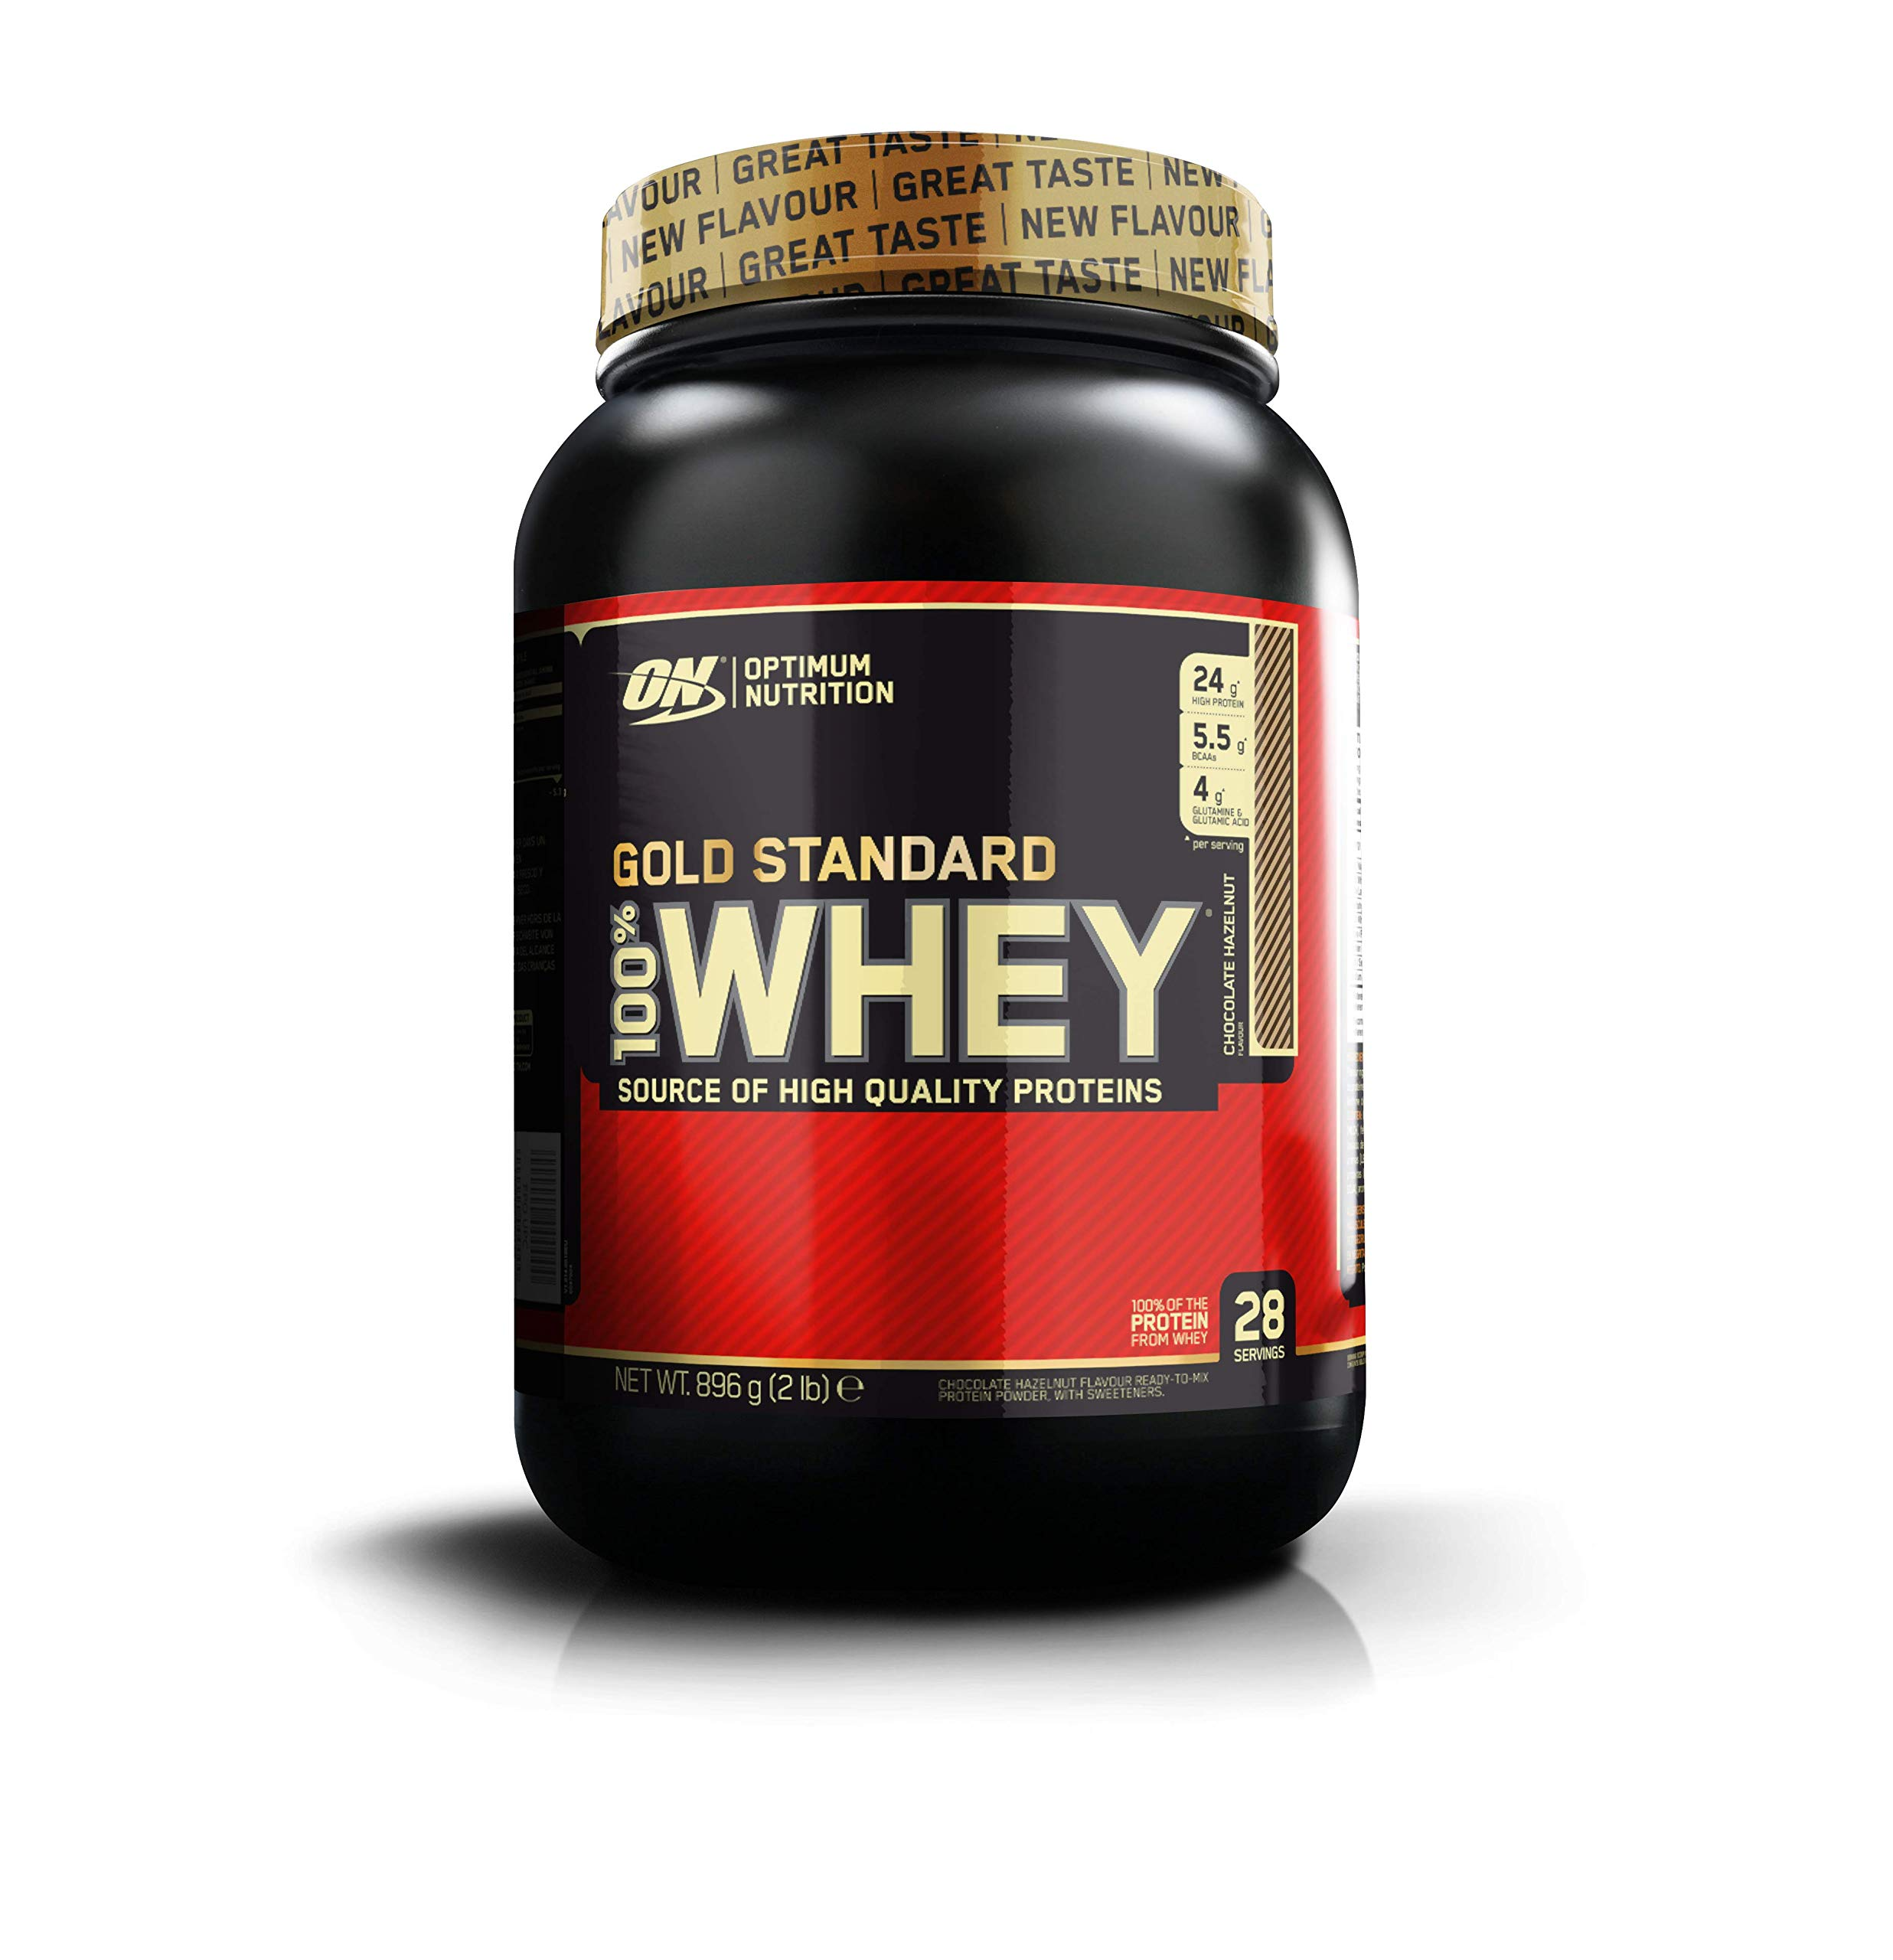 Optimum Nutrition Gold Standard 100% Whey Proteína en Polvo, Chocolate y Avellana - 896